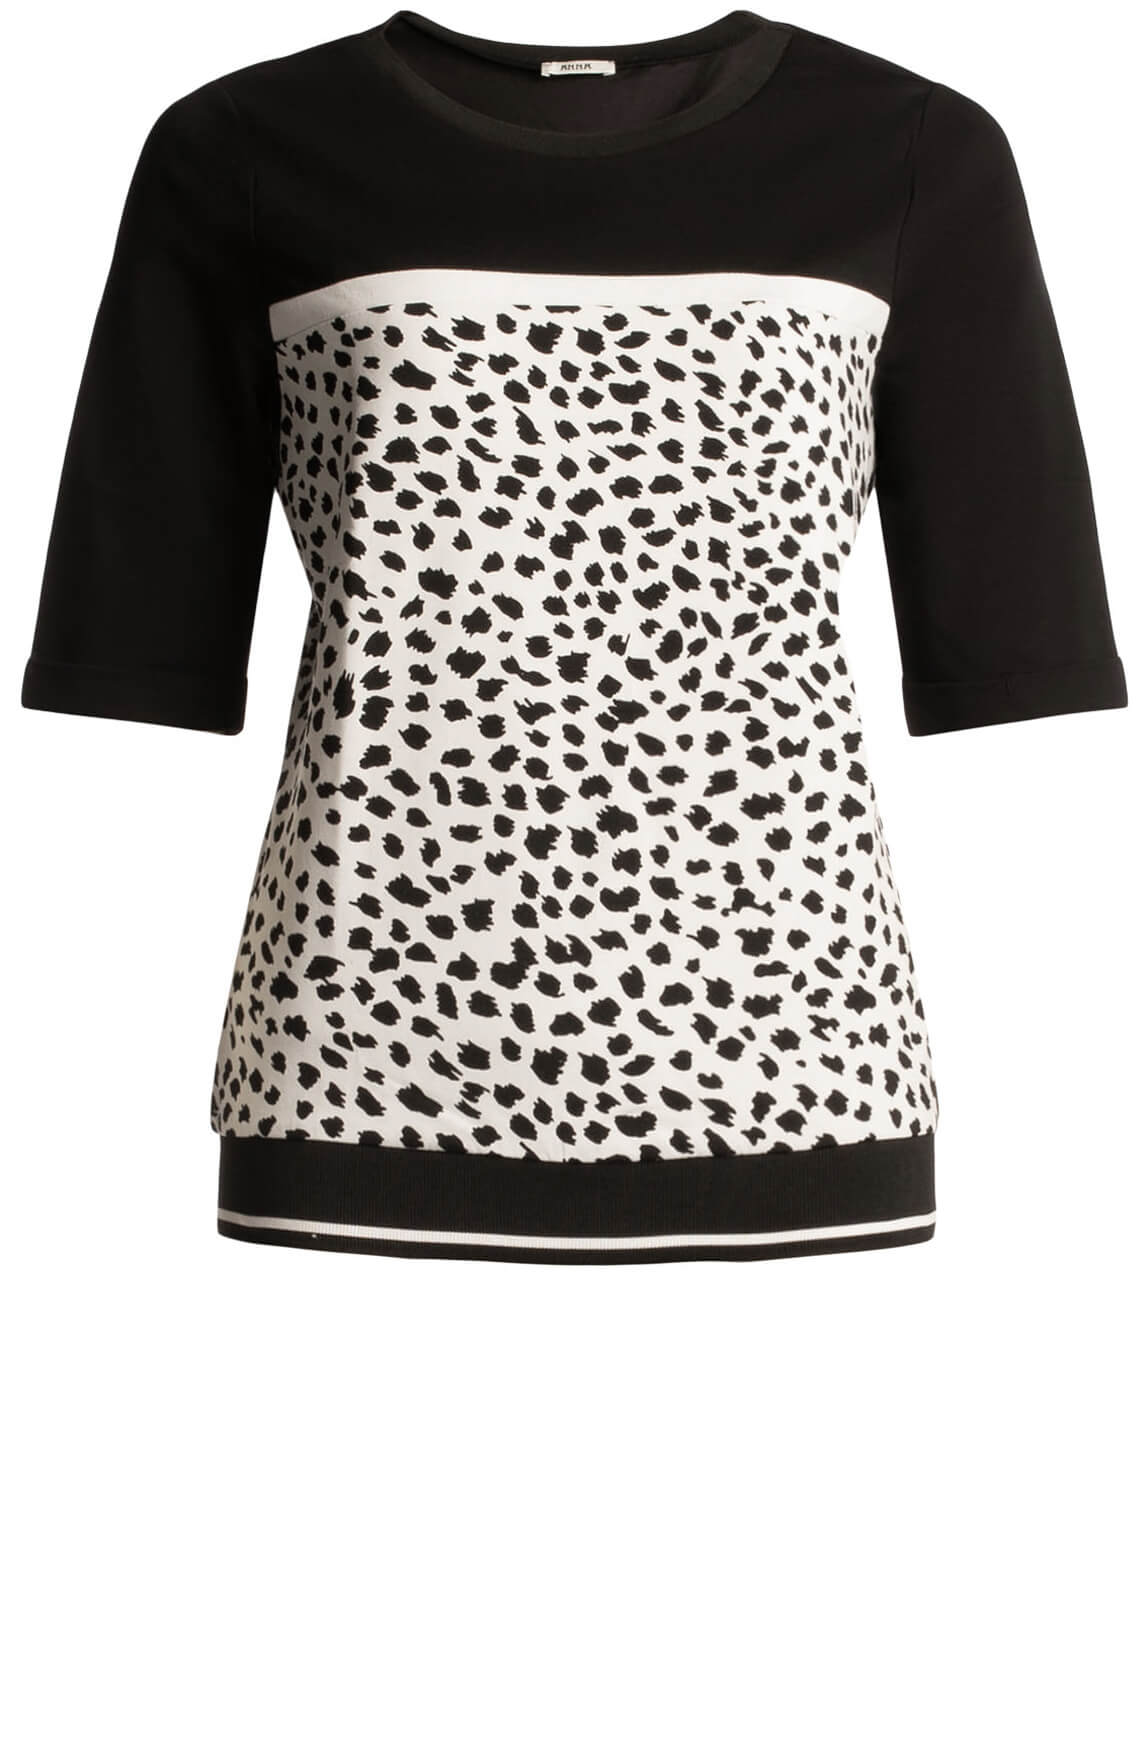 Anna Dames Sweater met animalprint zwart